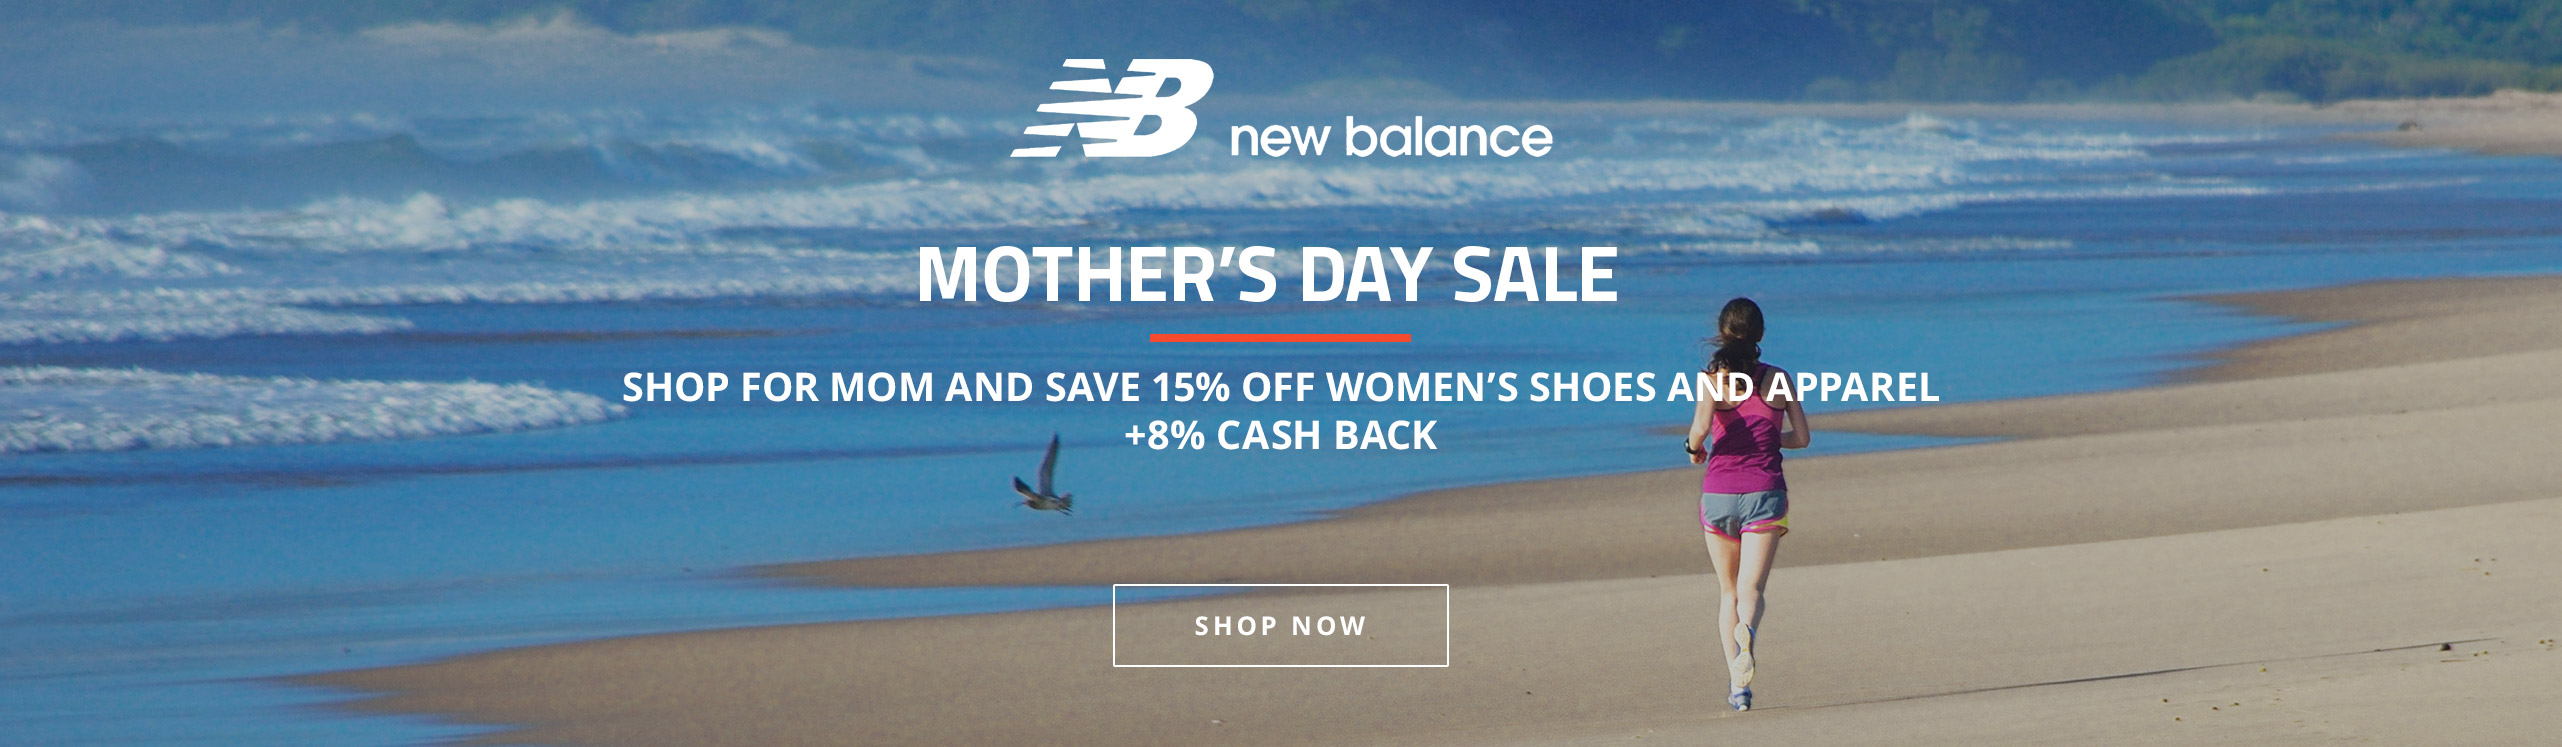 New Balance Mothers Day Sale